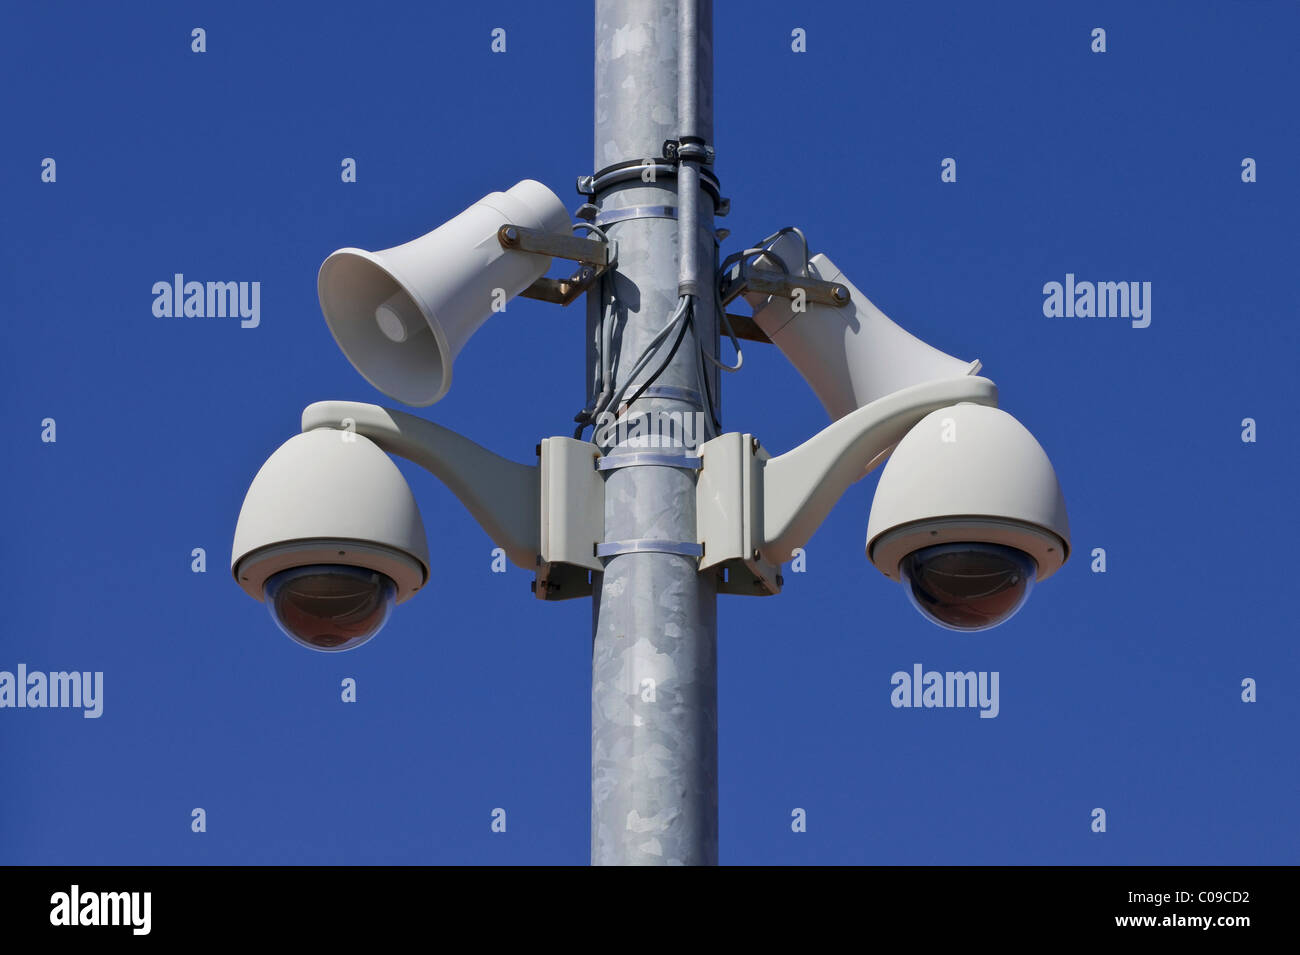 Two 360 degree cameras with two megaphones on a pole, surveillance with option for announcements - Stock Image